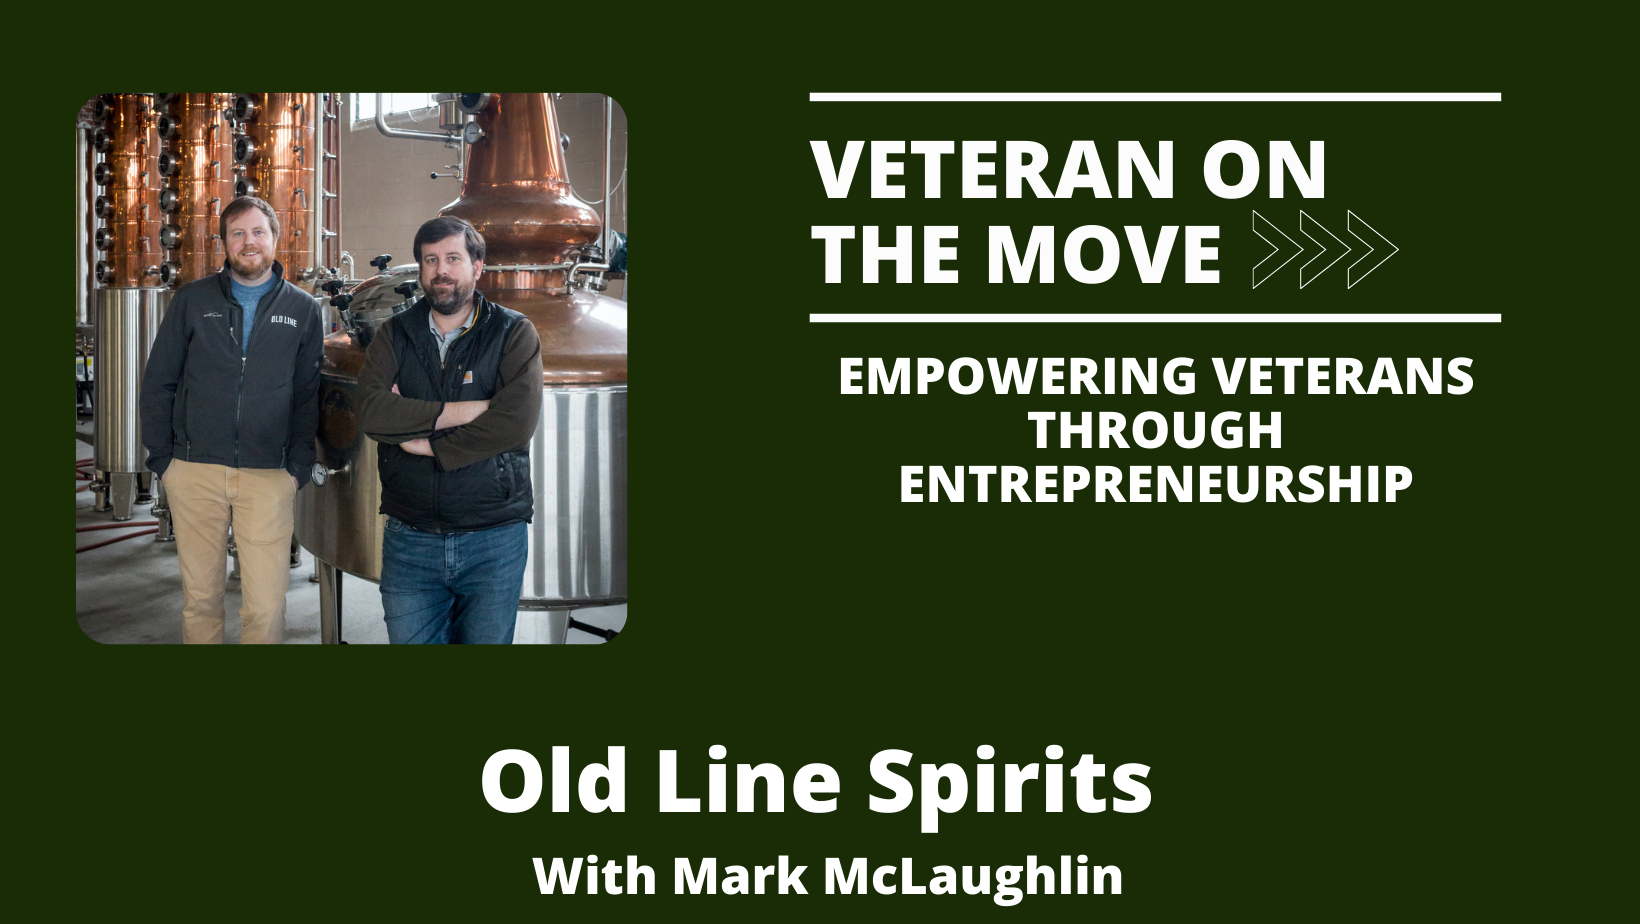 Old Line Spirits; Veteran On The Move